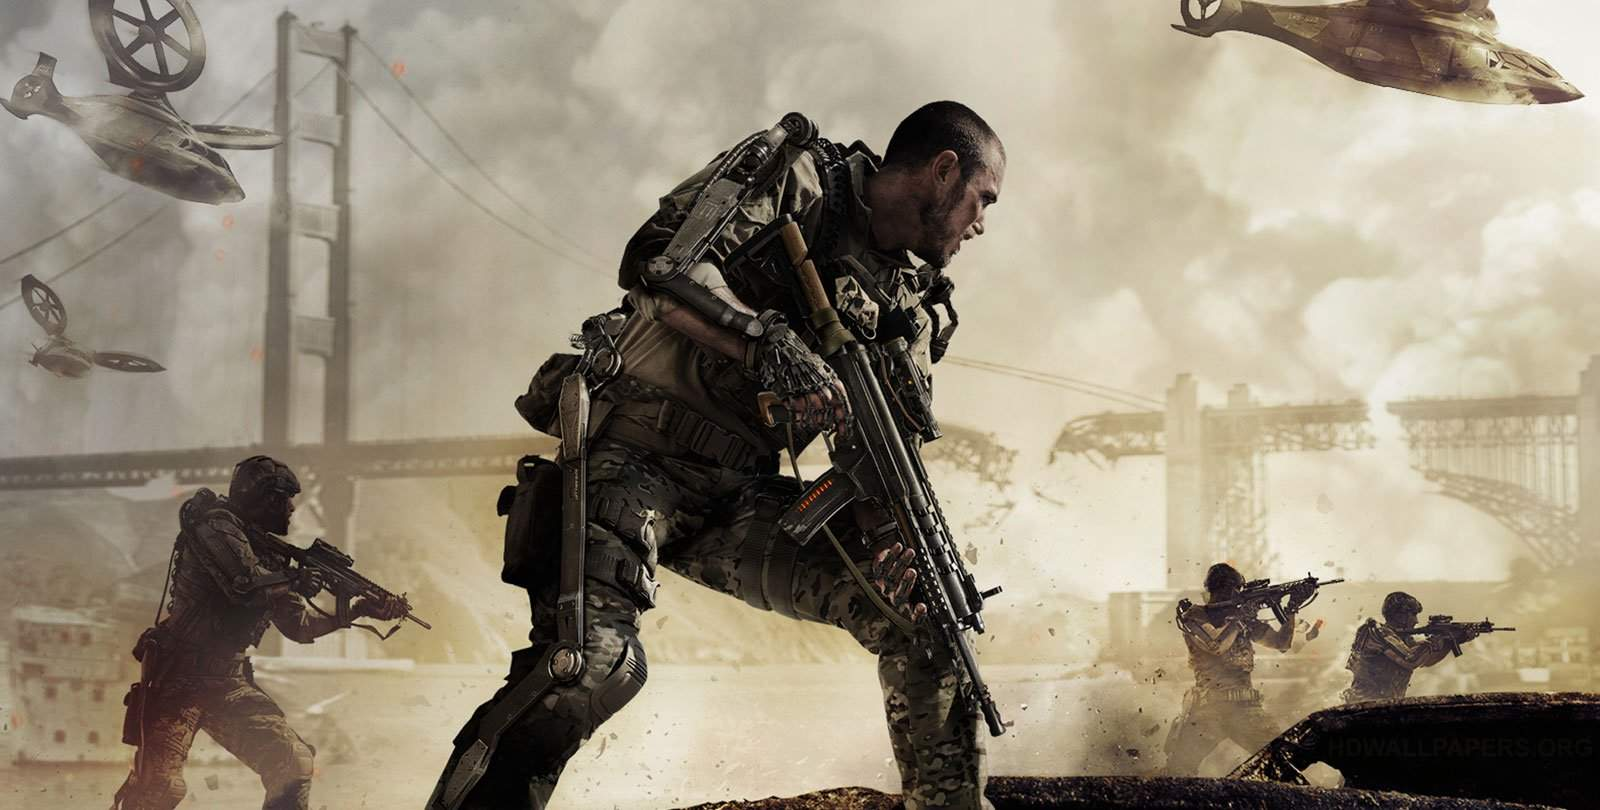 Livestream of Call of Duty: Advanced Warfare Multiplayer Gameplay